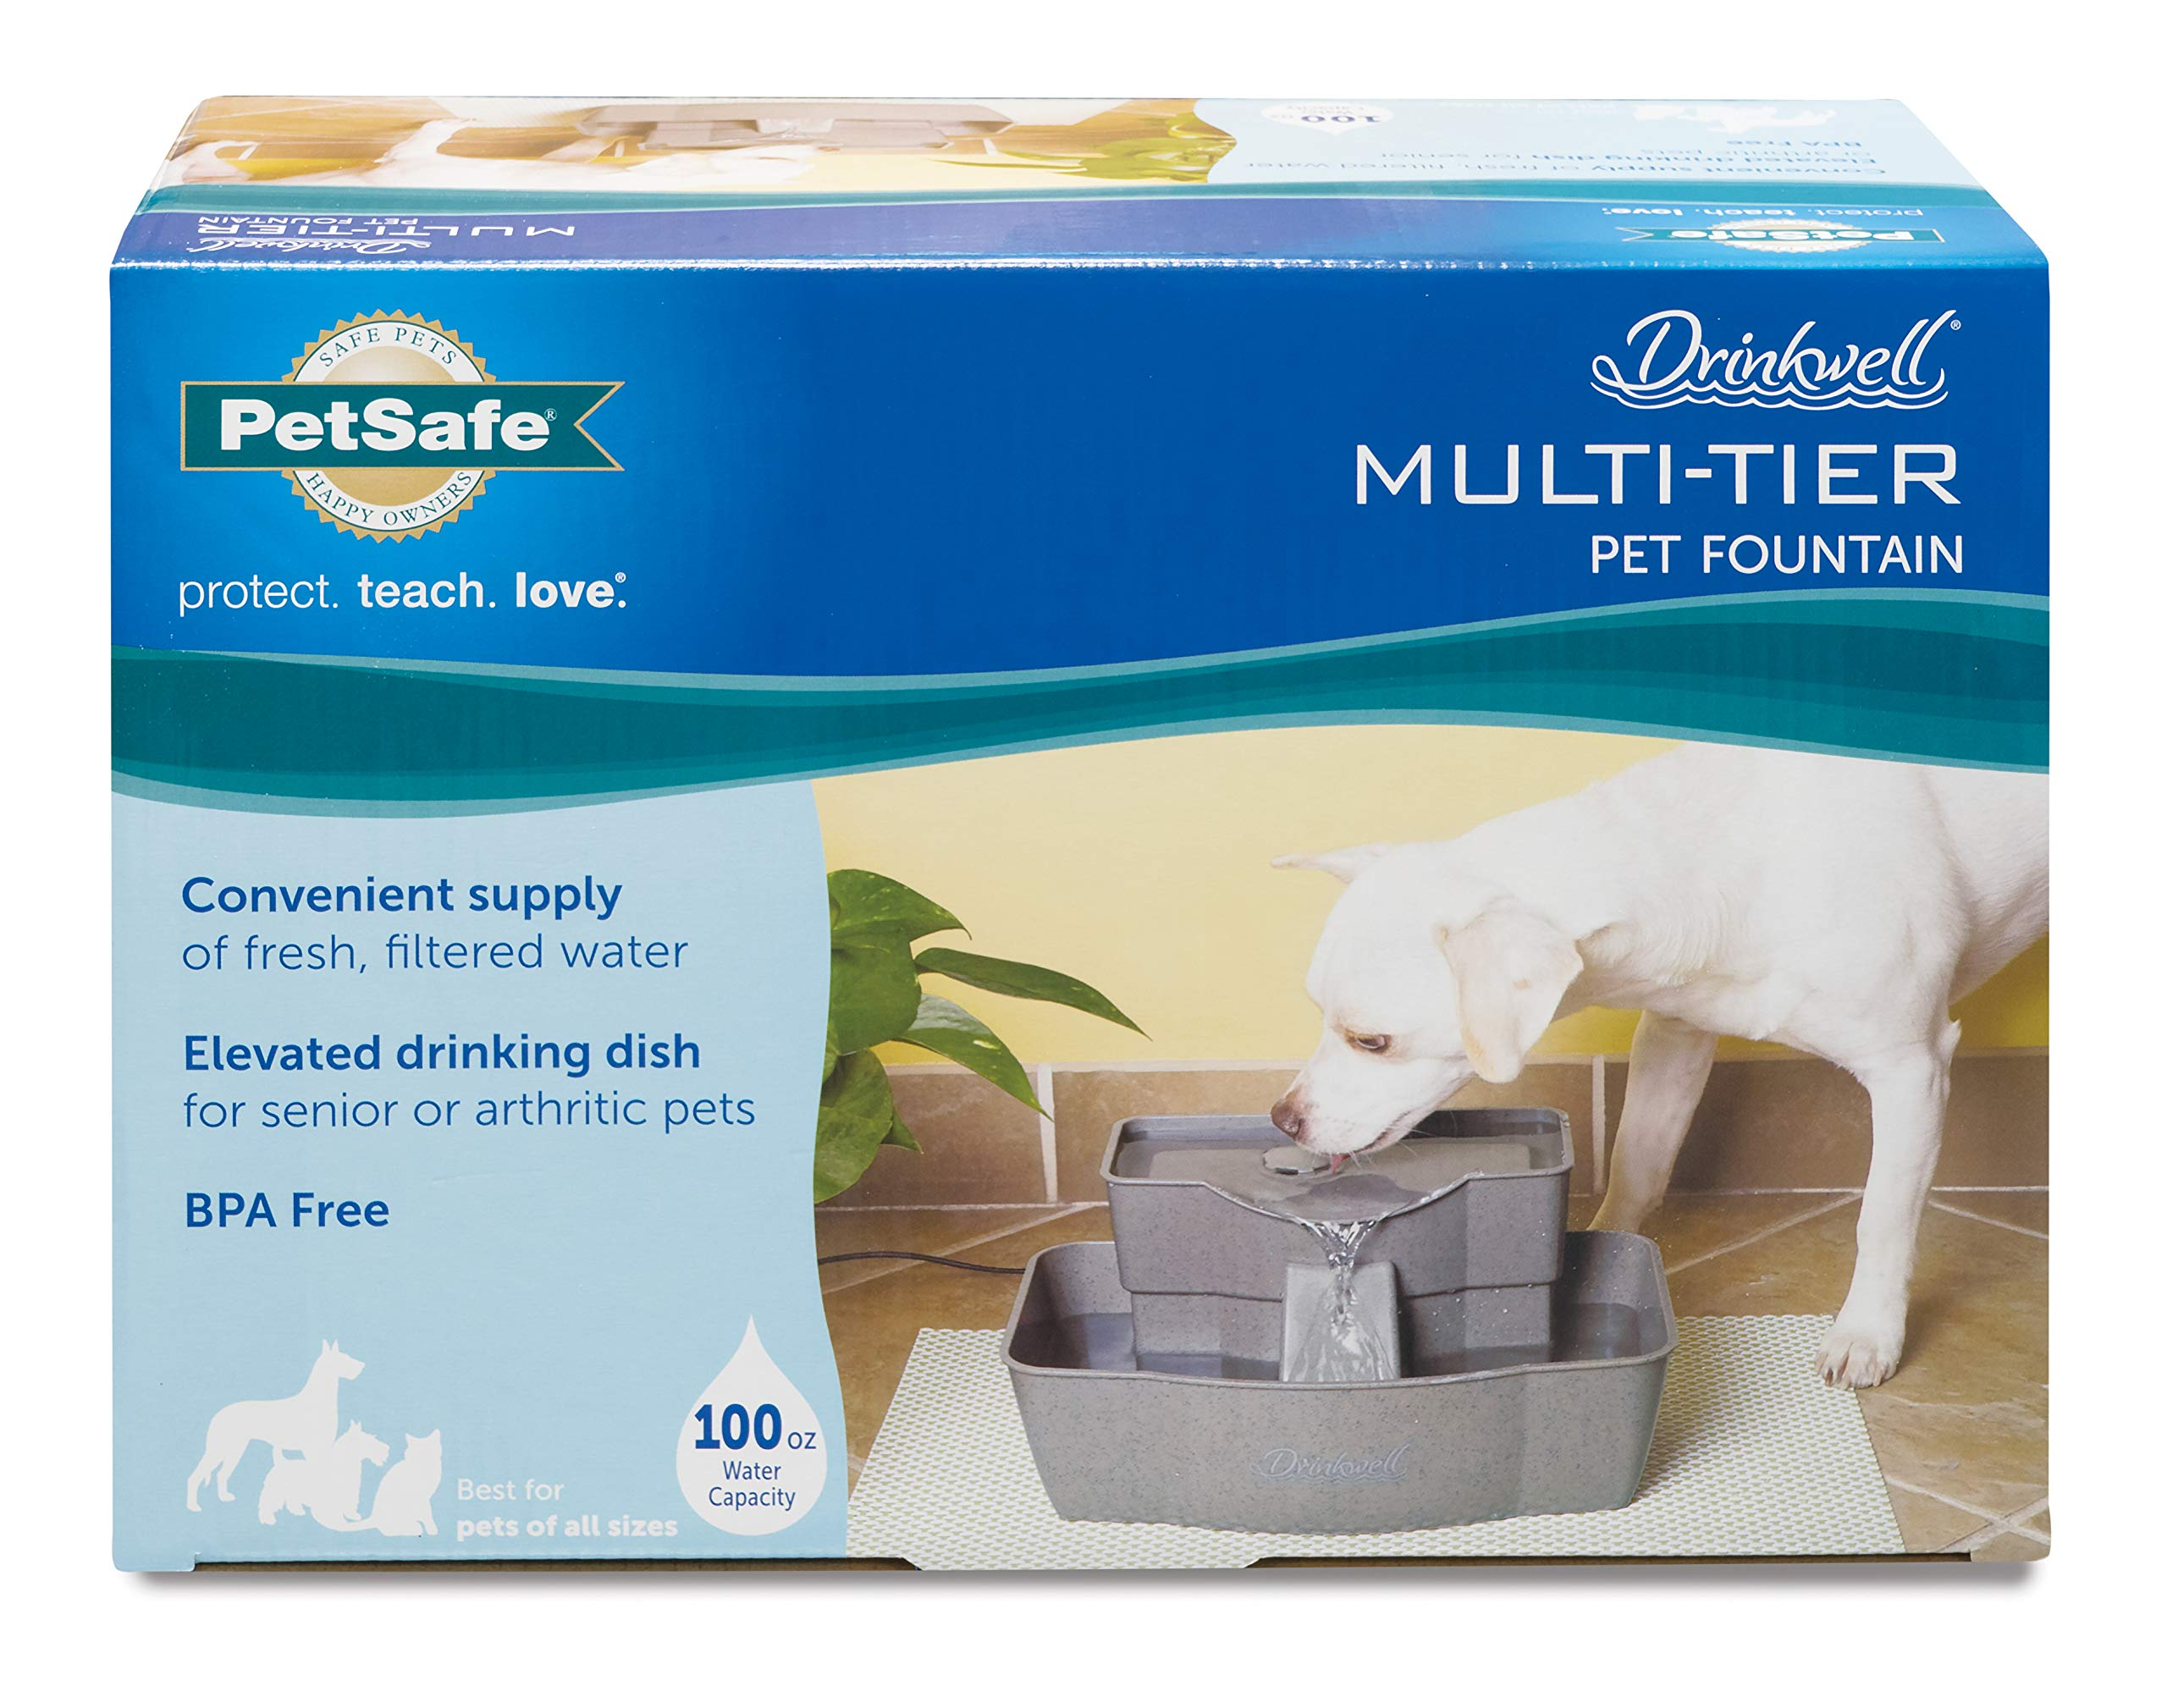 PetSafe Drinkwell Multi-Tier Dog and Cat Water Fountain, Automatic Drinking Fountain for Pets, 100 oz. Water Capacity - PWW00-13708 by PetSafe (Image #5)